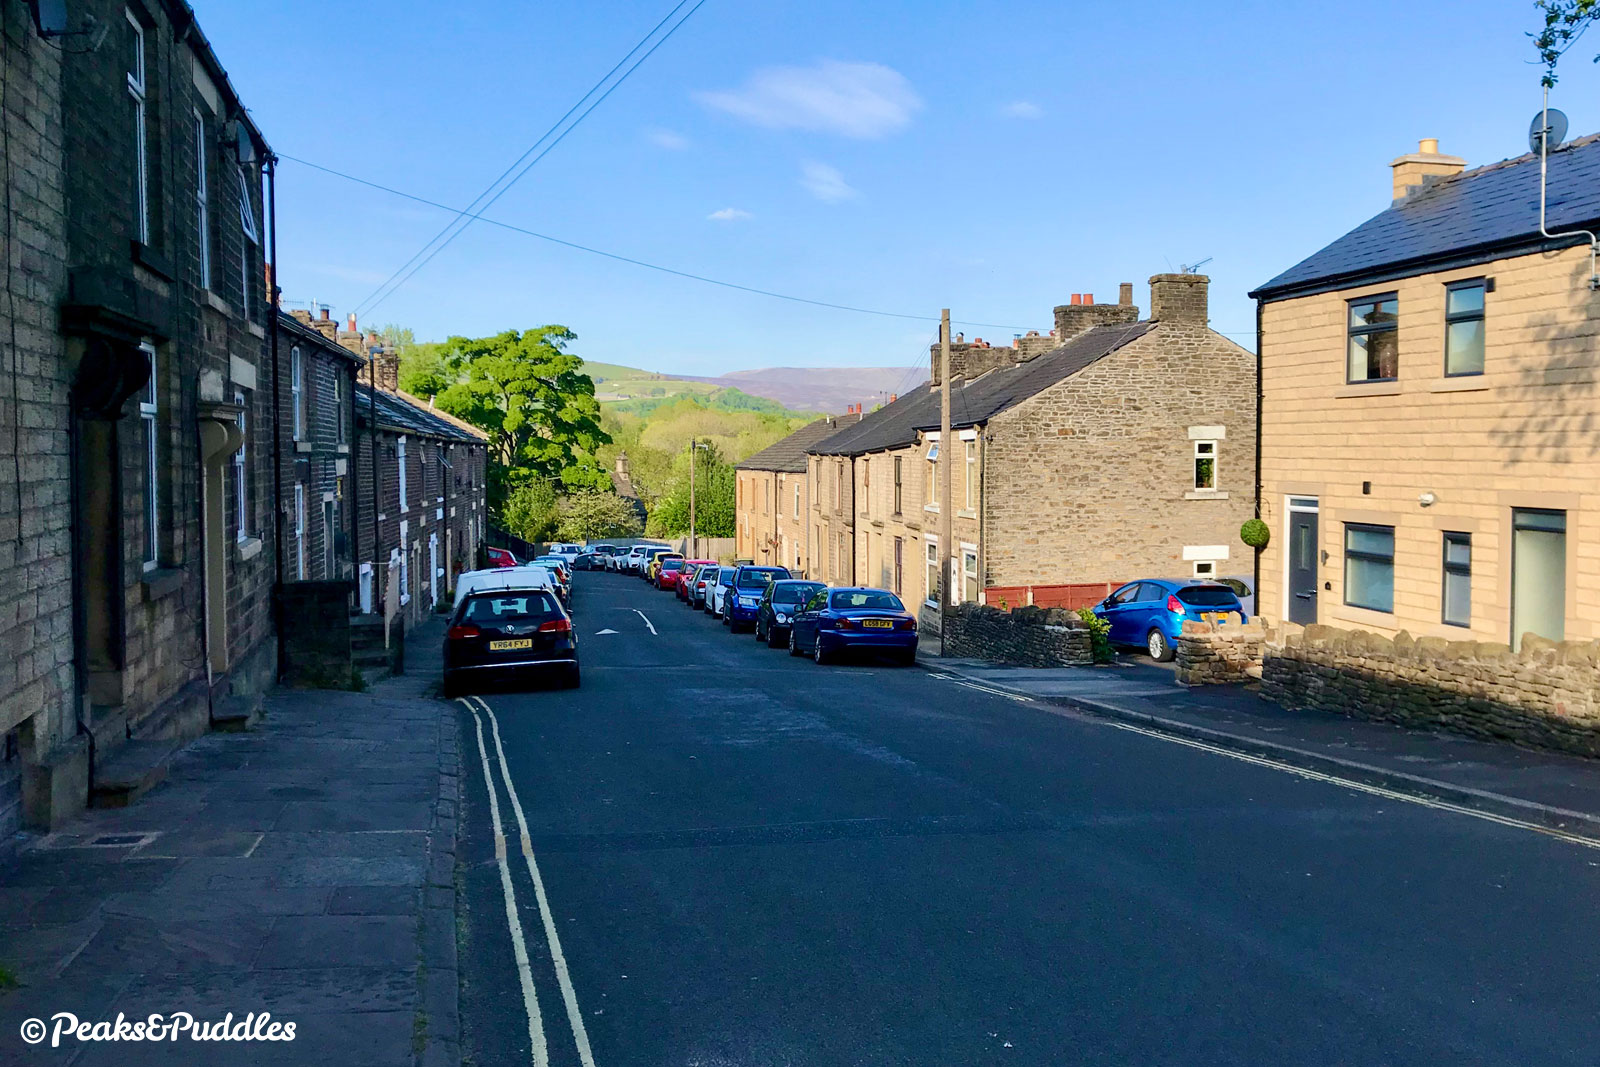 Bridge Street continues the descent out of New Mills into the Sett Valley.